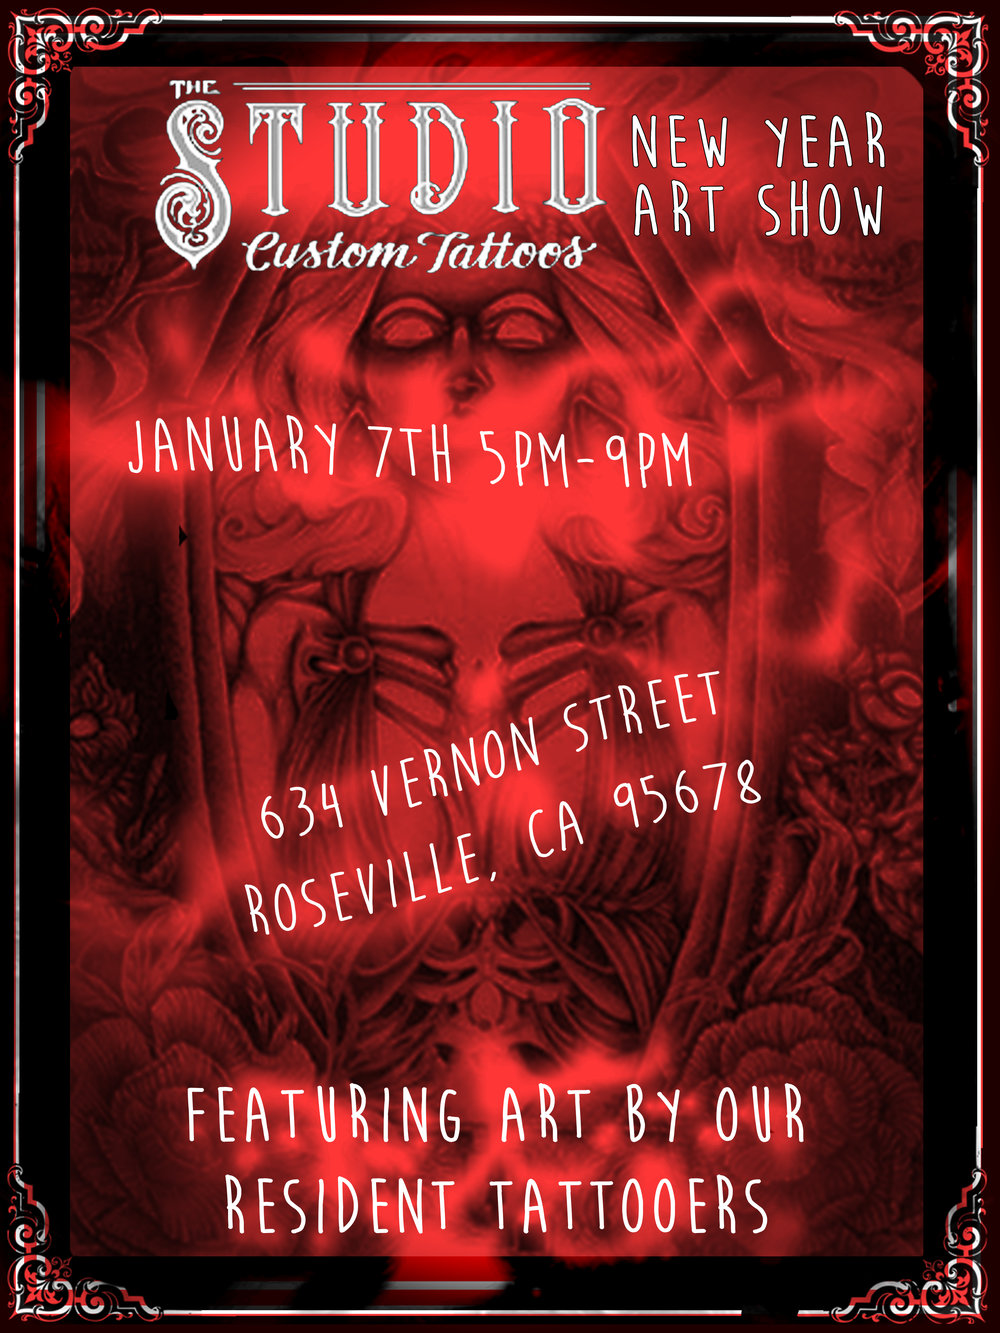 We Will Have Hot Dogs Corn Hole Games Art Prints Stickers And The First Ever Studio Tattoos Coloring Book Come Out January 7th Between 5pm 9pm